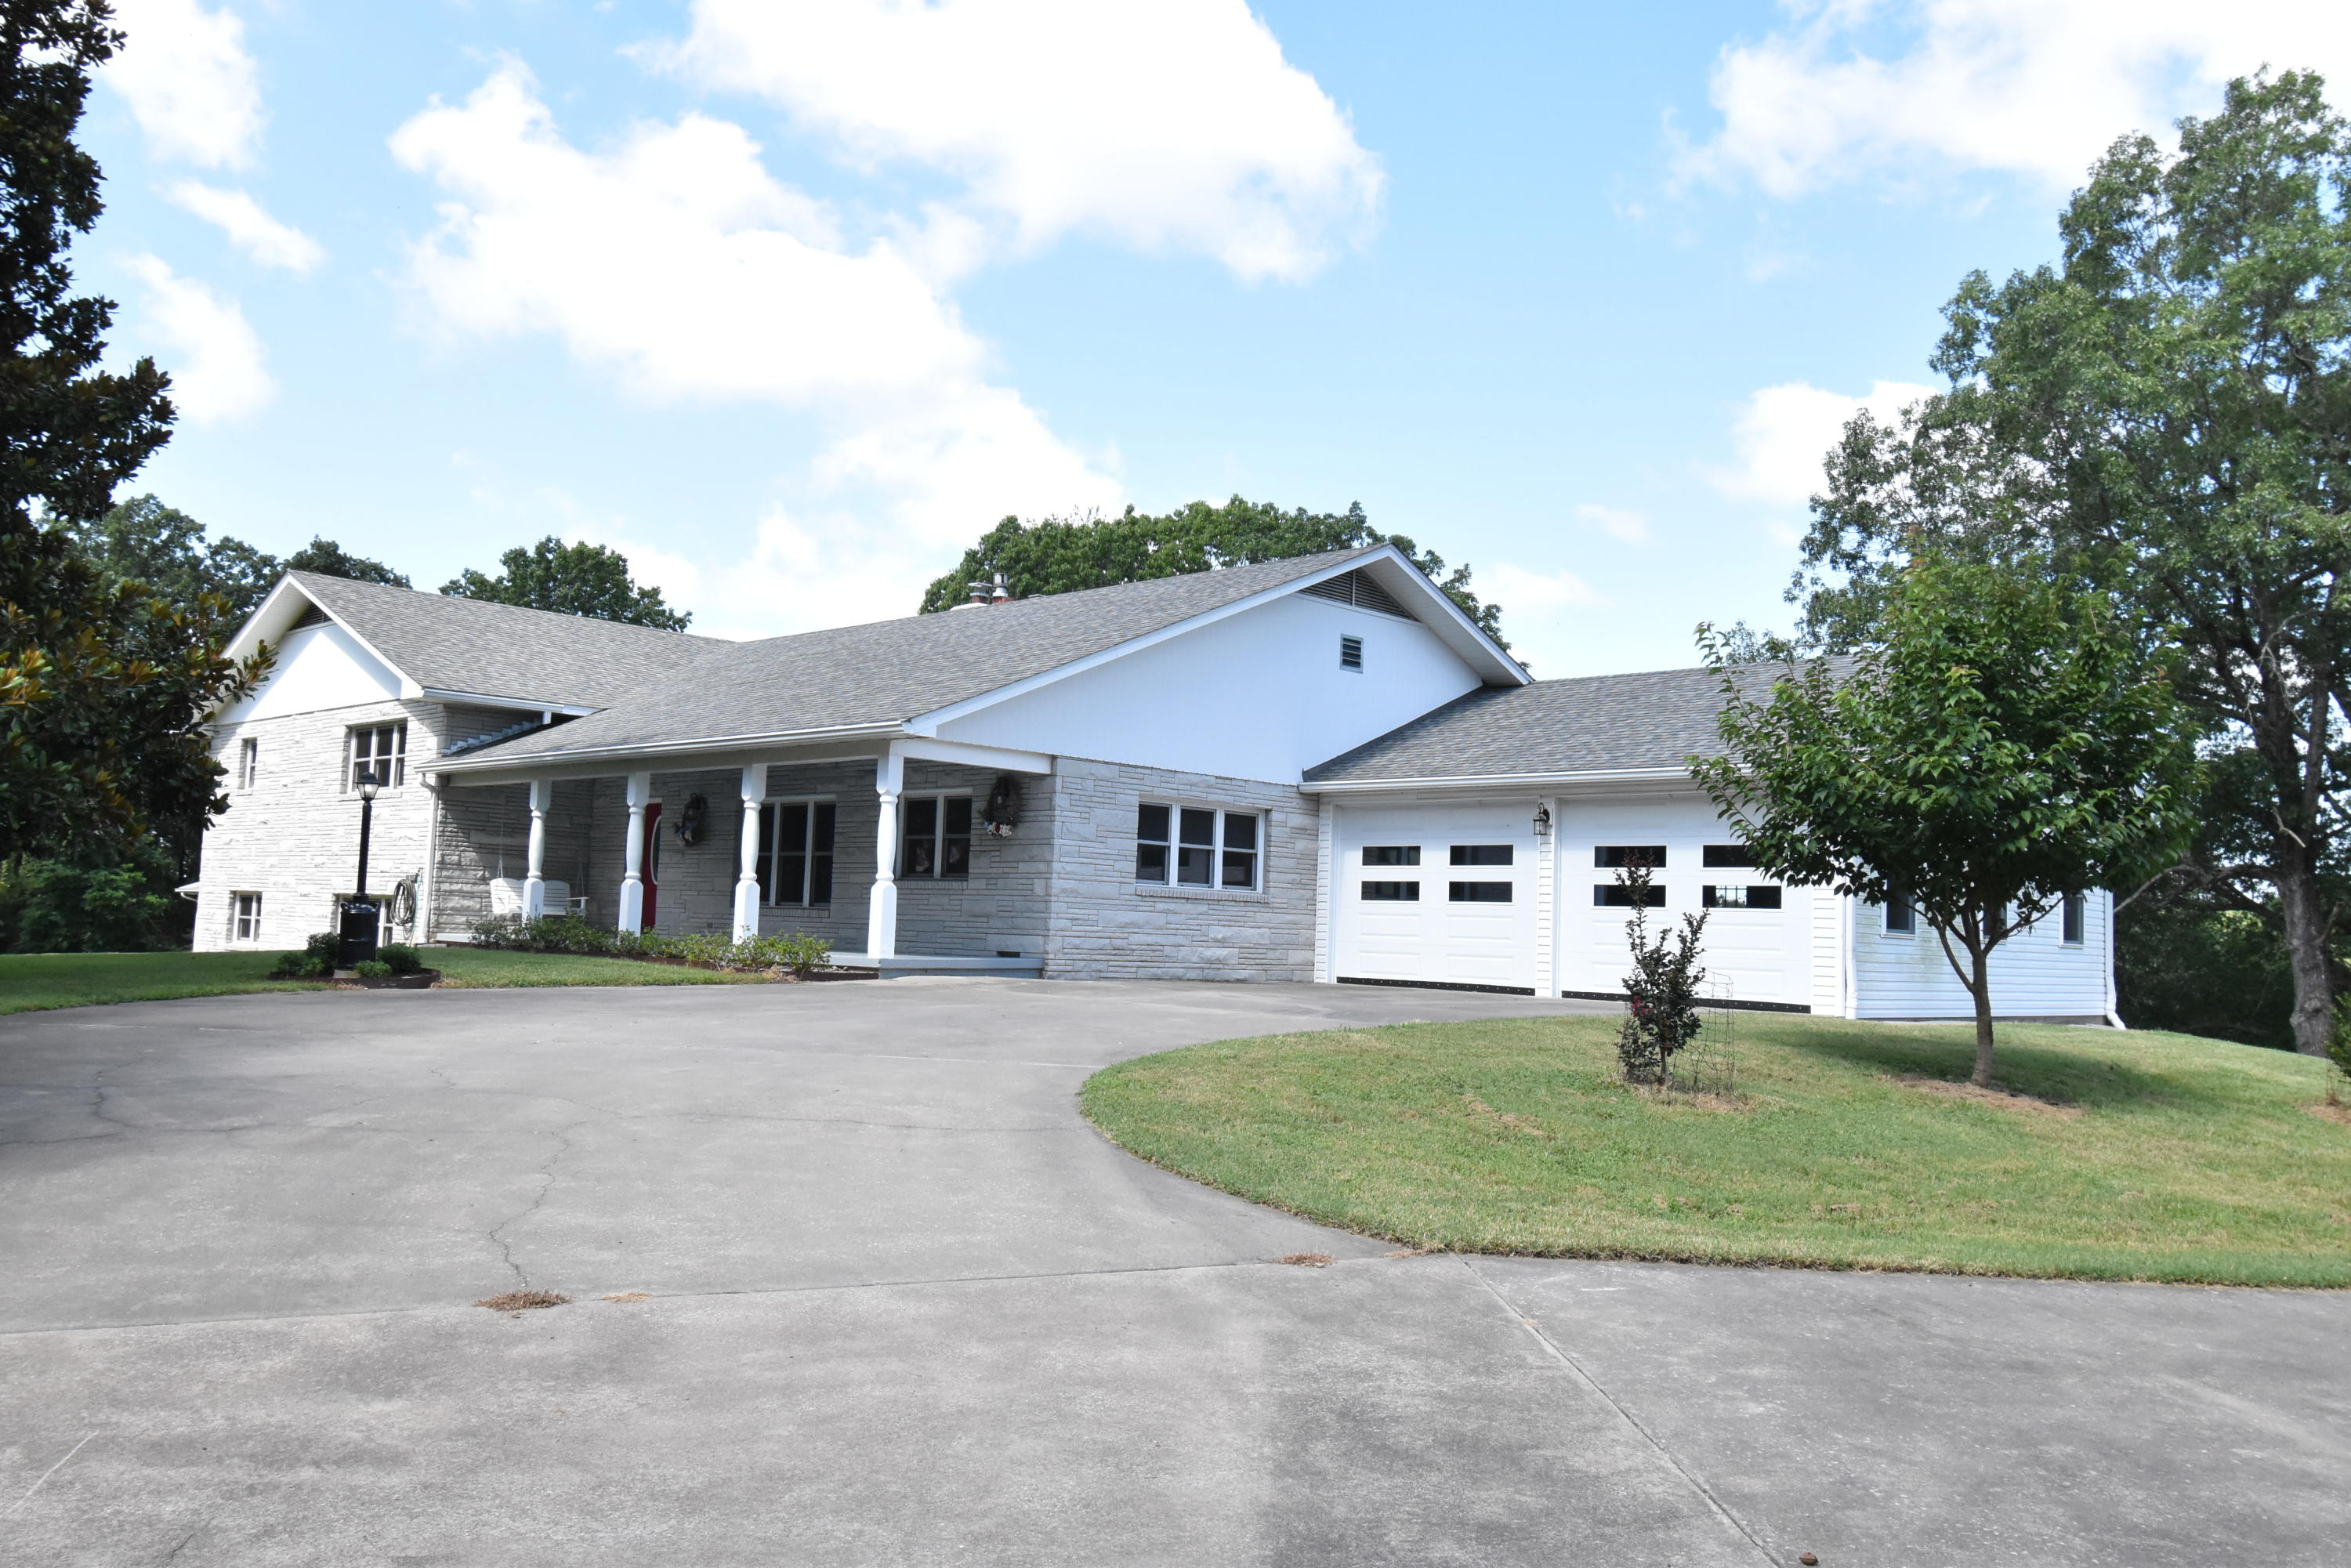 22645 State Hwy Cassville, MO 65625